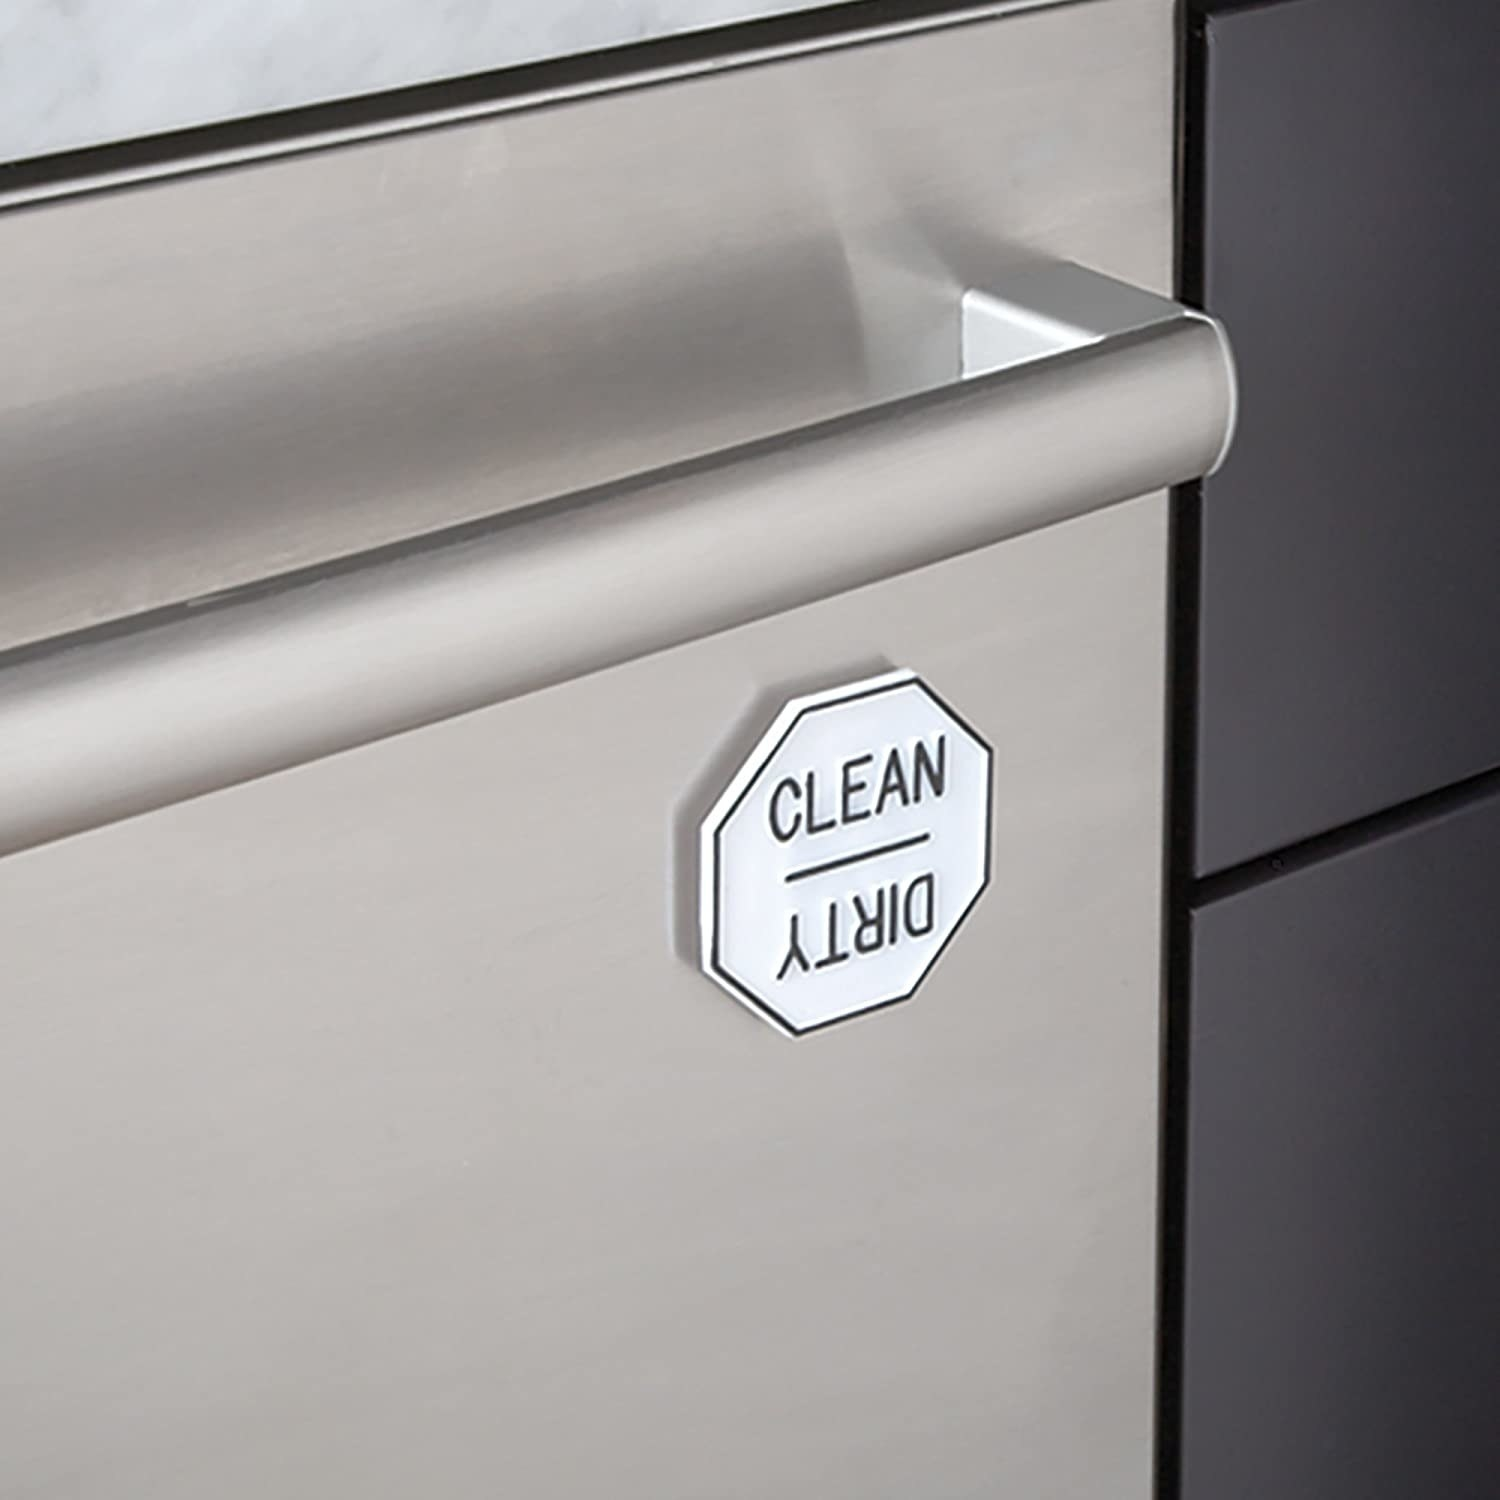 The magnet attached to the dishwasher, indicating that the dishes inside are clean